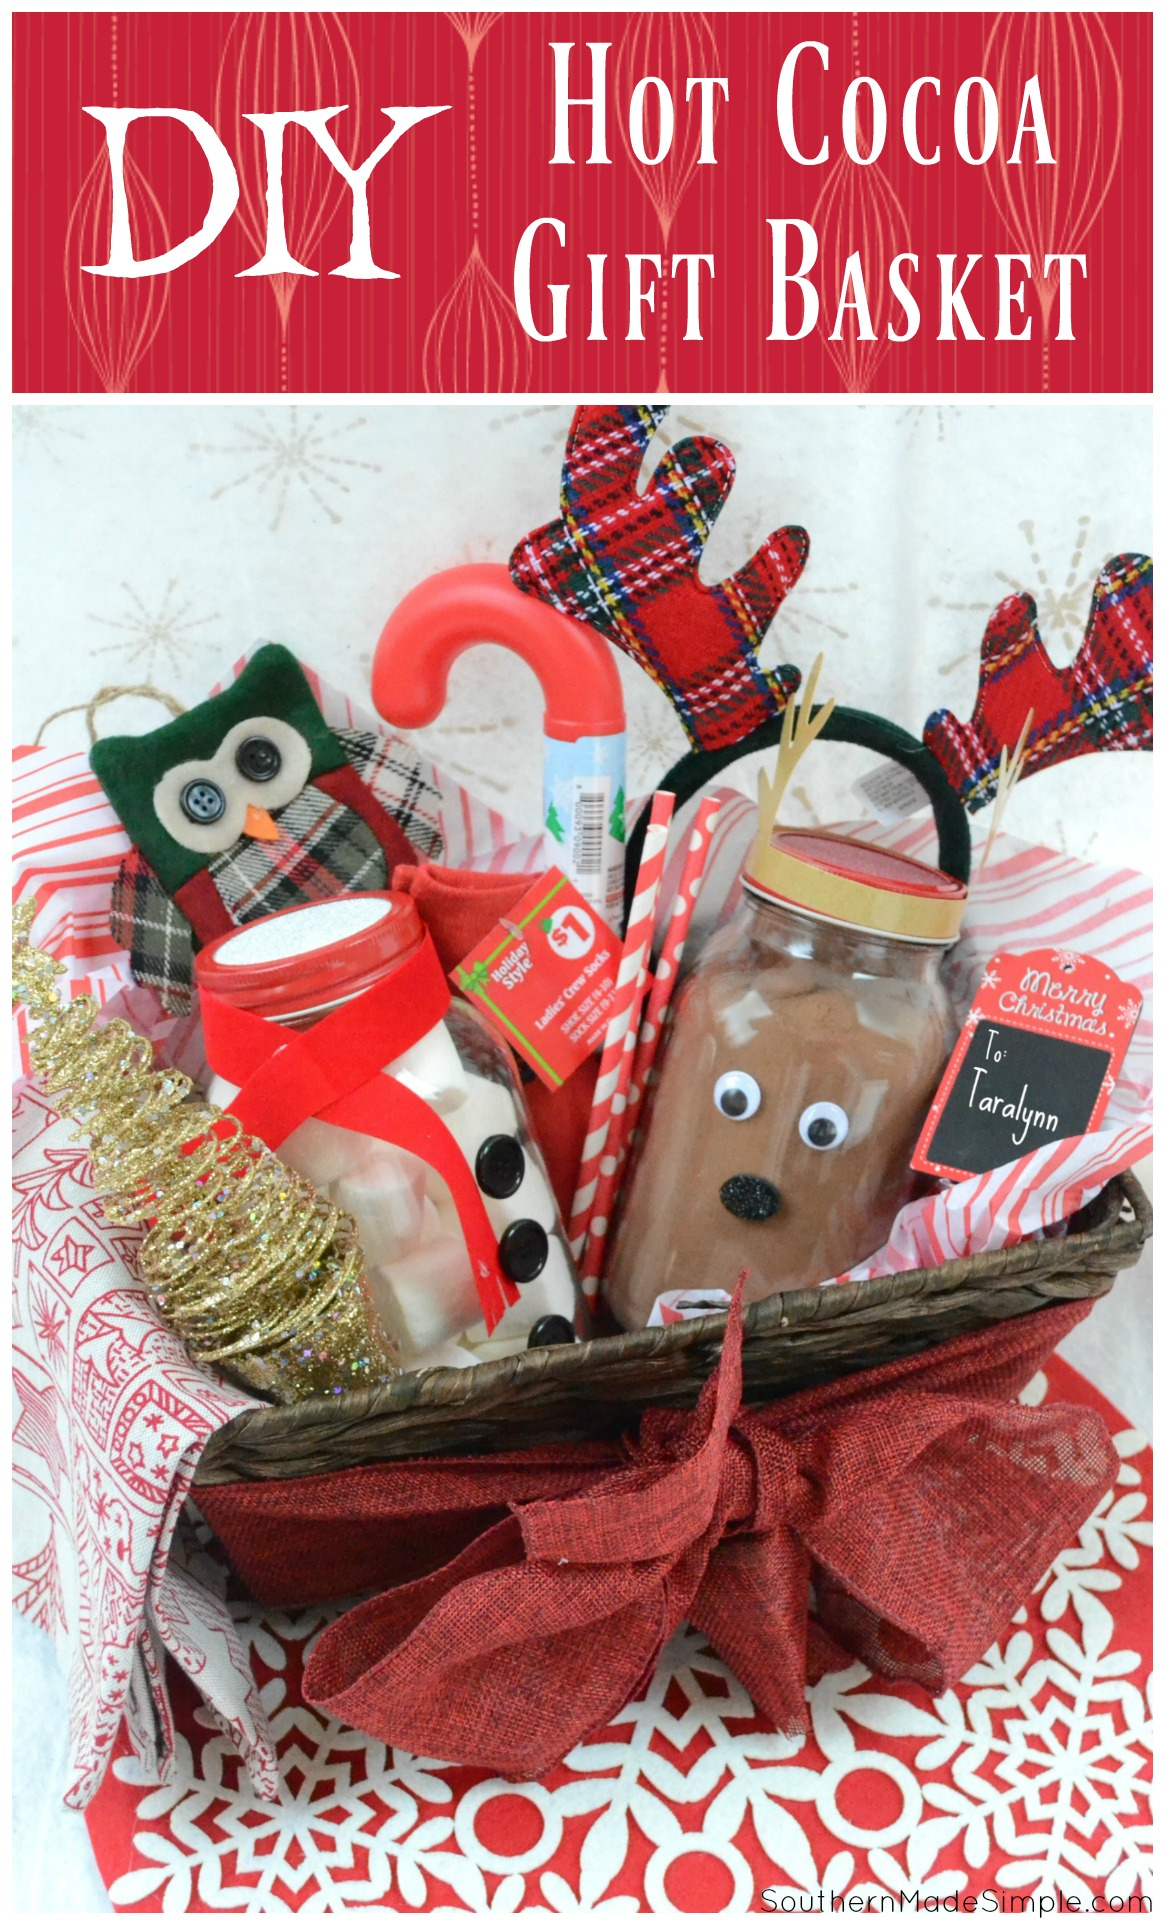 Easy Holiday Gift Idea: DIY Hot Cocoa Gift Basket - Southern Made Simple